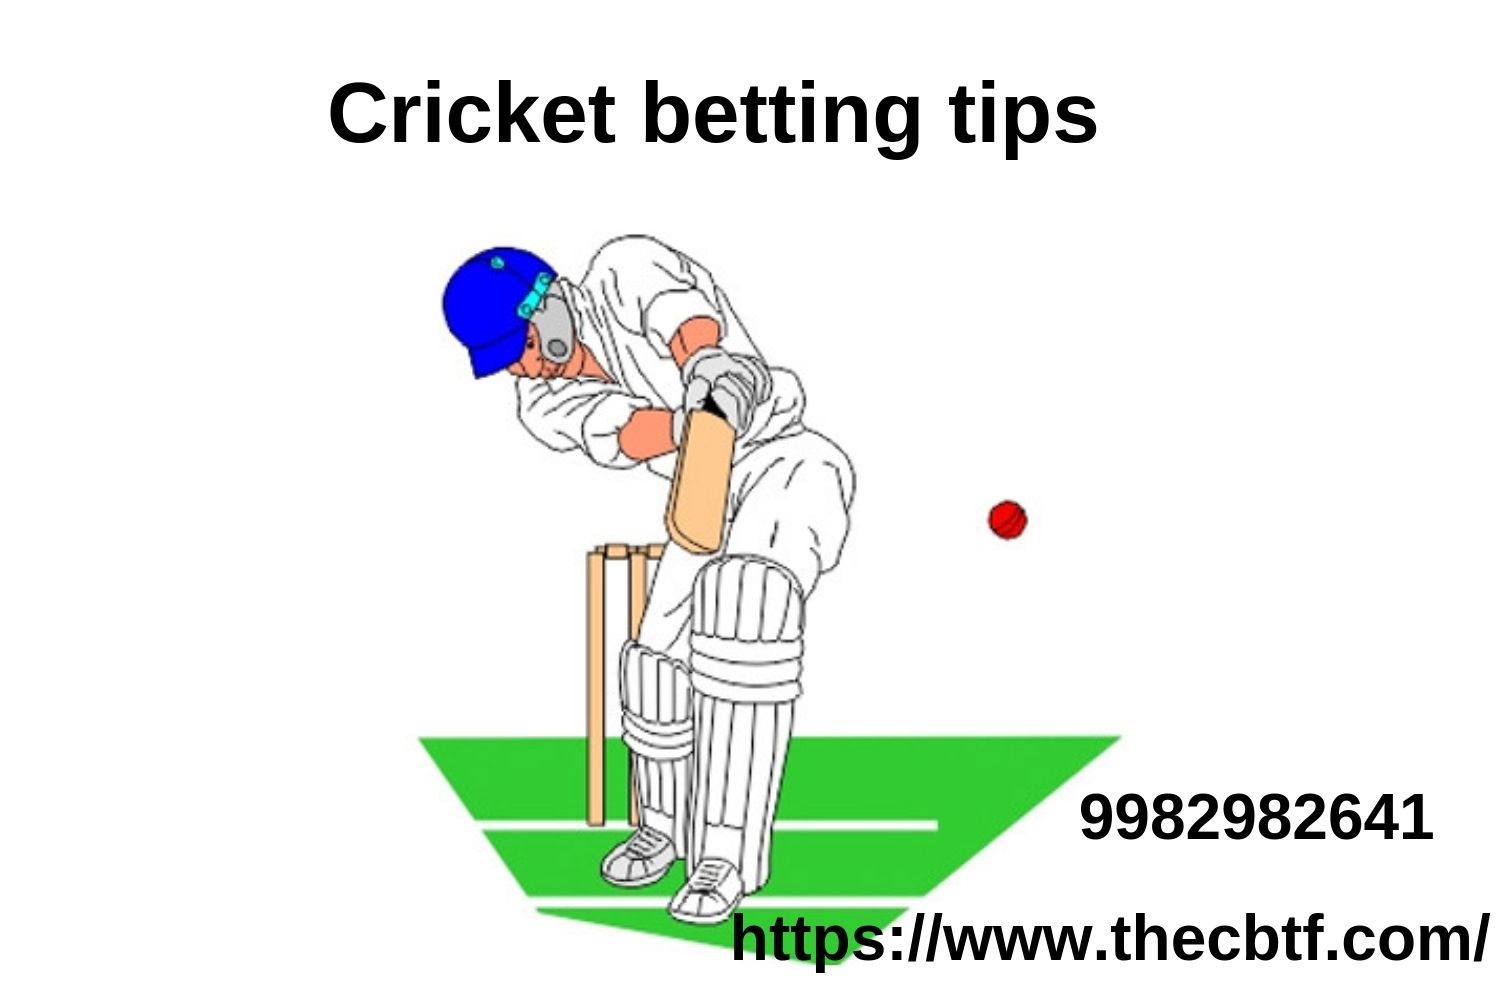 Sporting life cricket betting tips binary options system 2021 masters